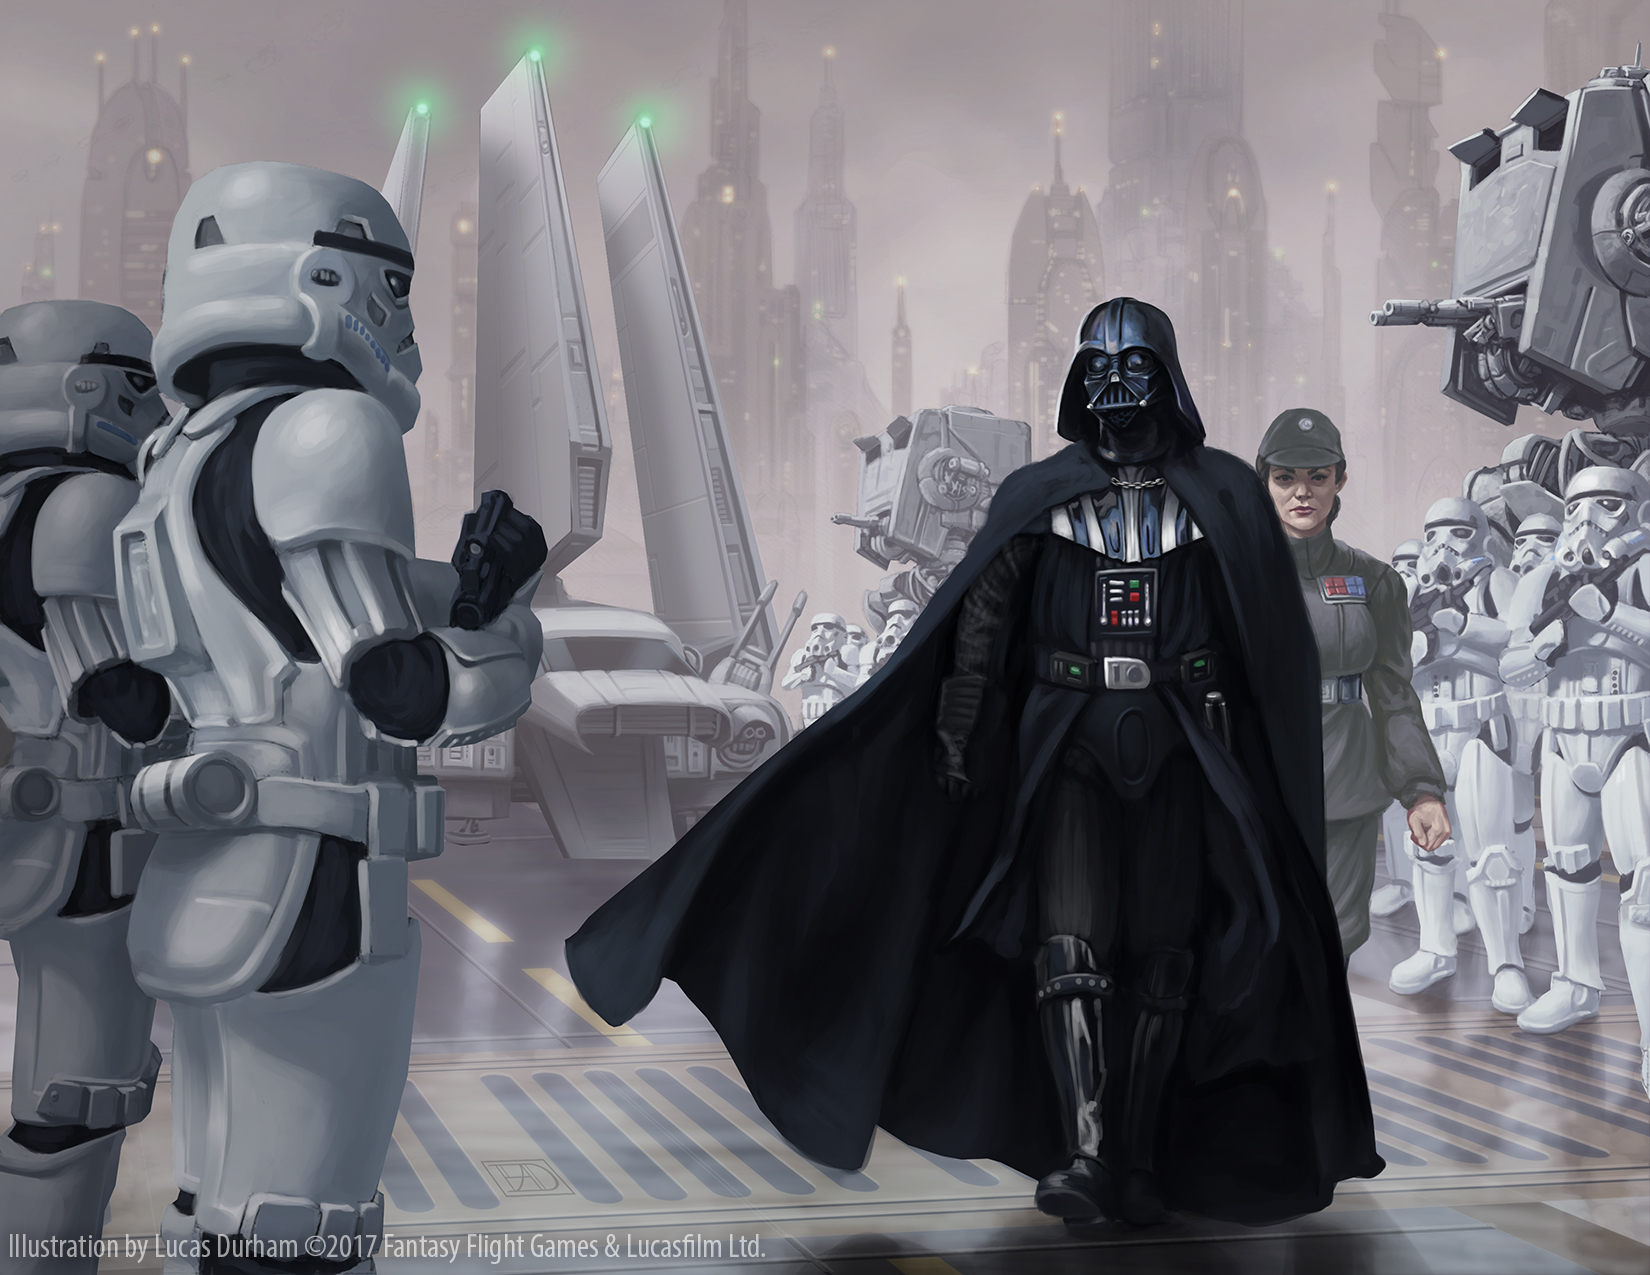 The Realm of the Dark Side